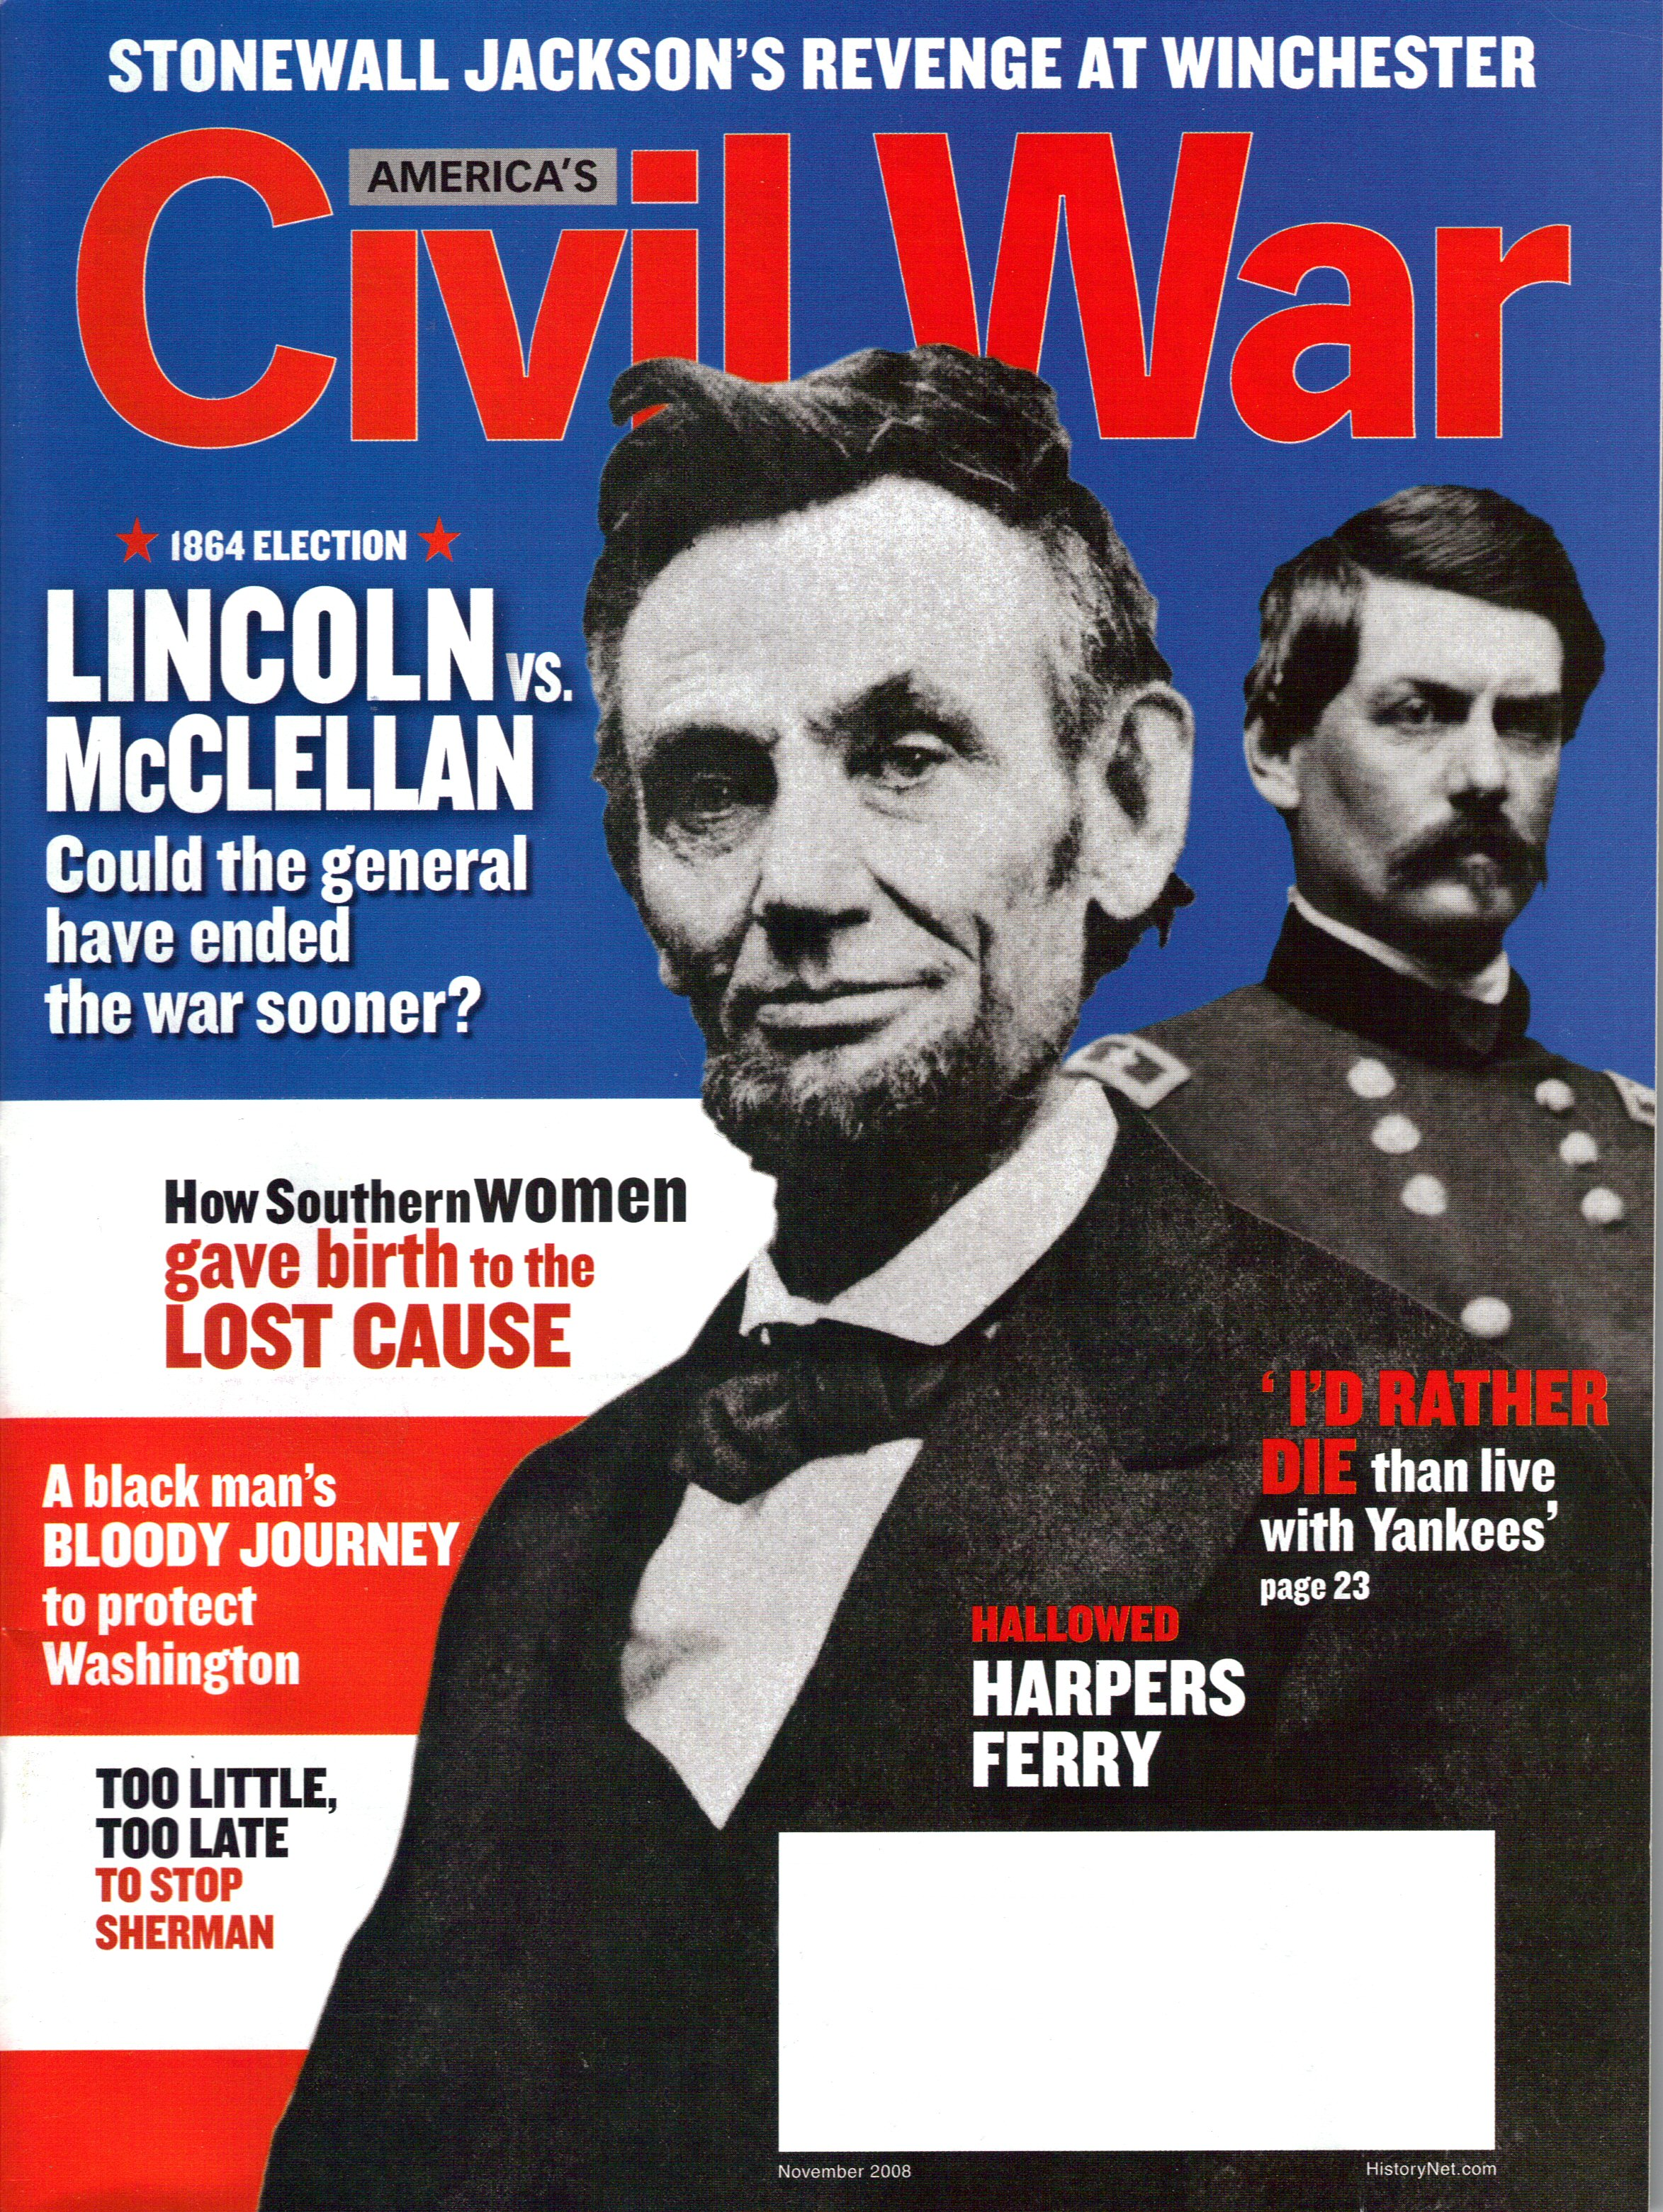 Americas Civil War, Volume 21, Number 5 (November 2008)